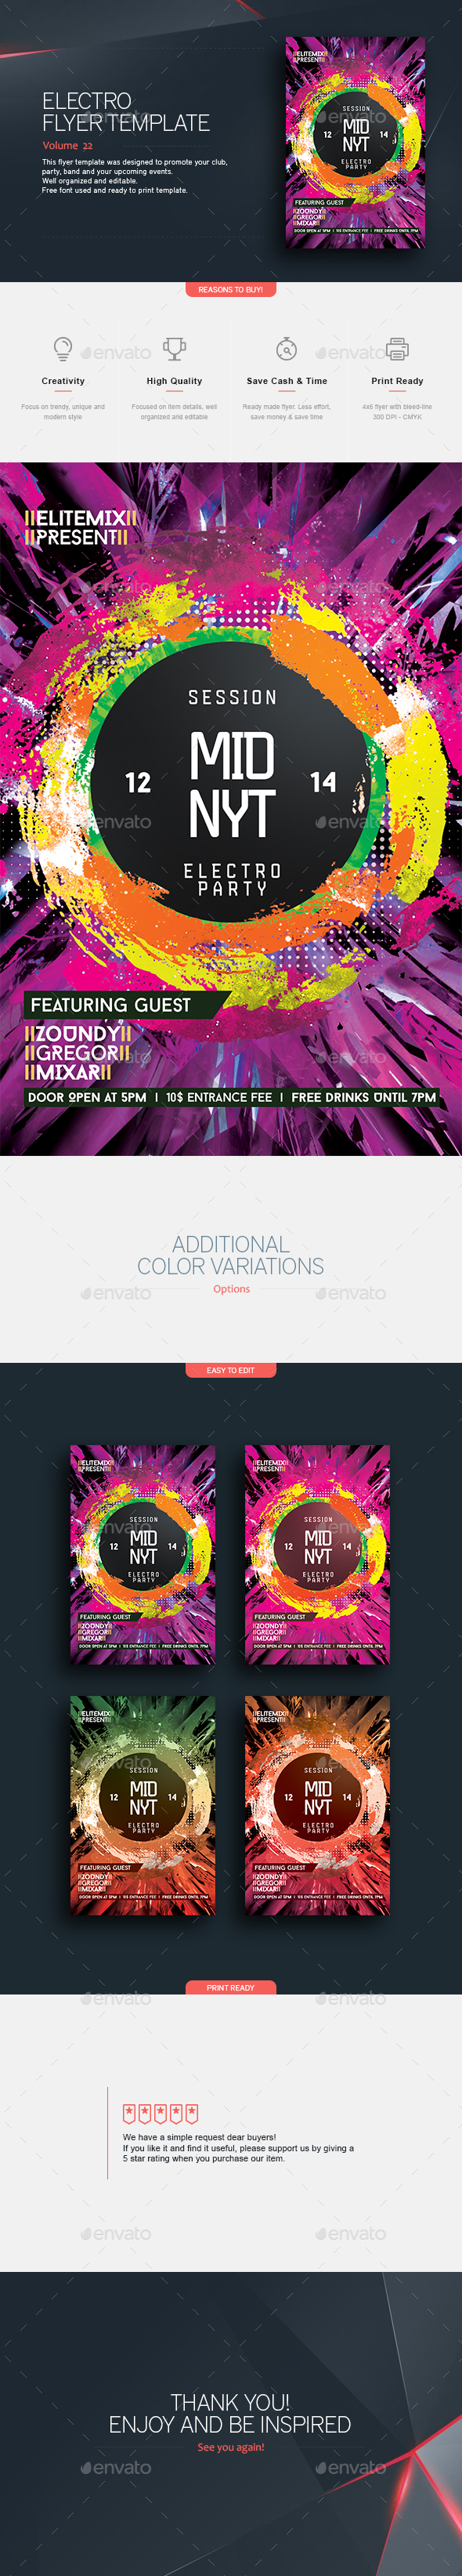 Midnight Electro - Flyer Template - Clubs & Parties Events